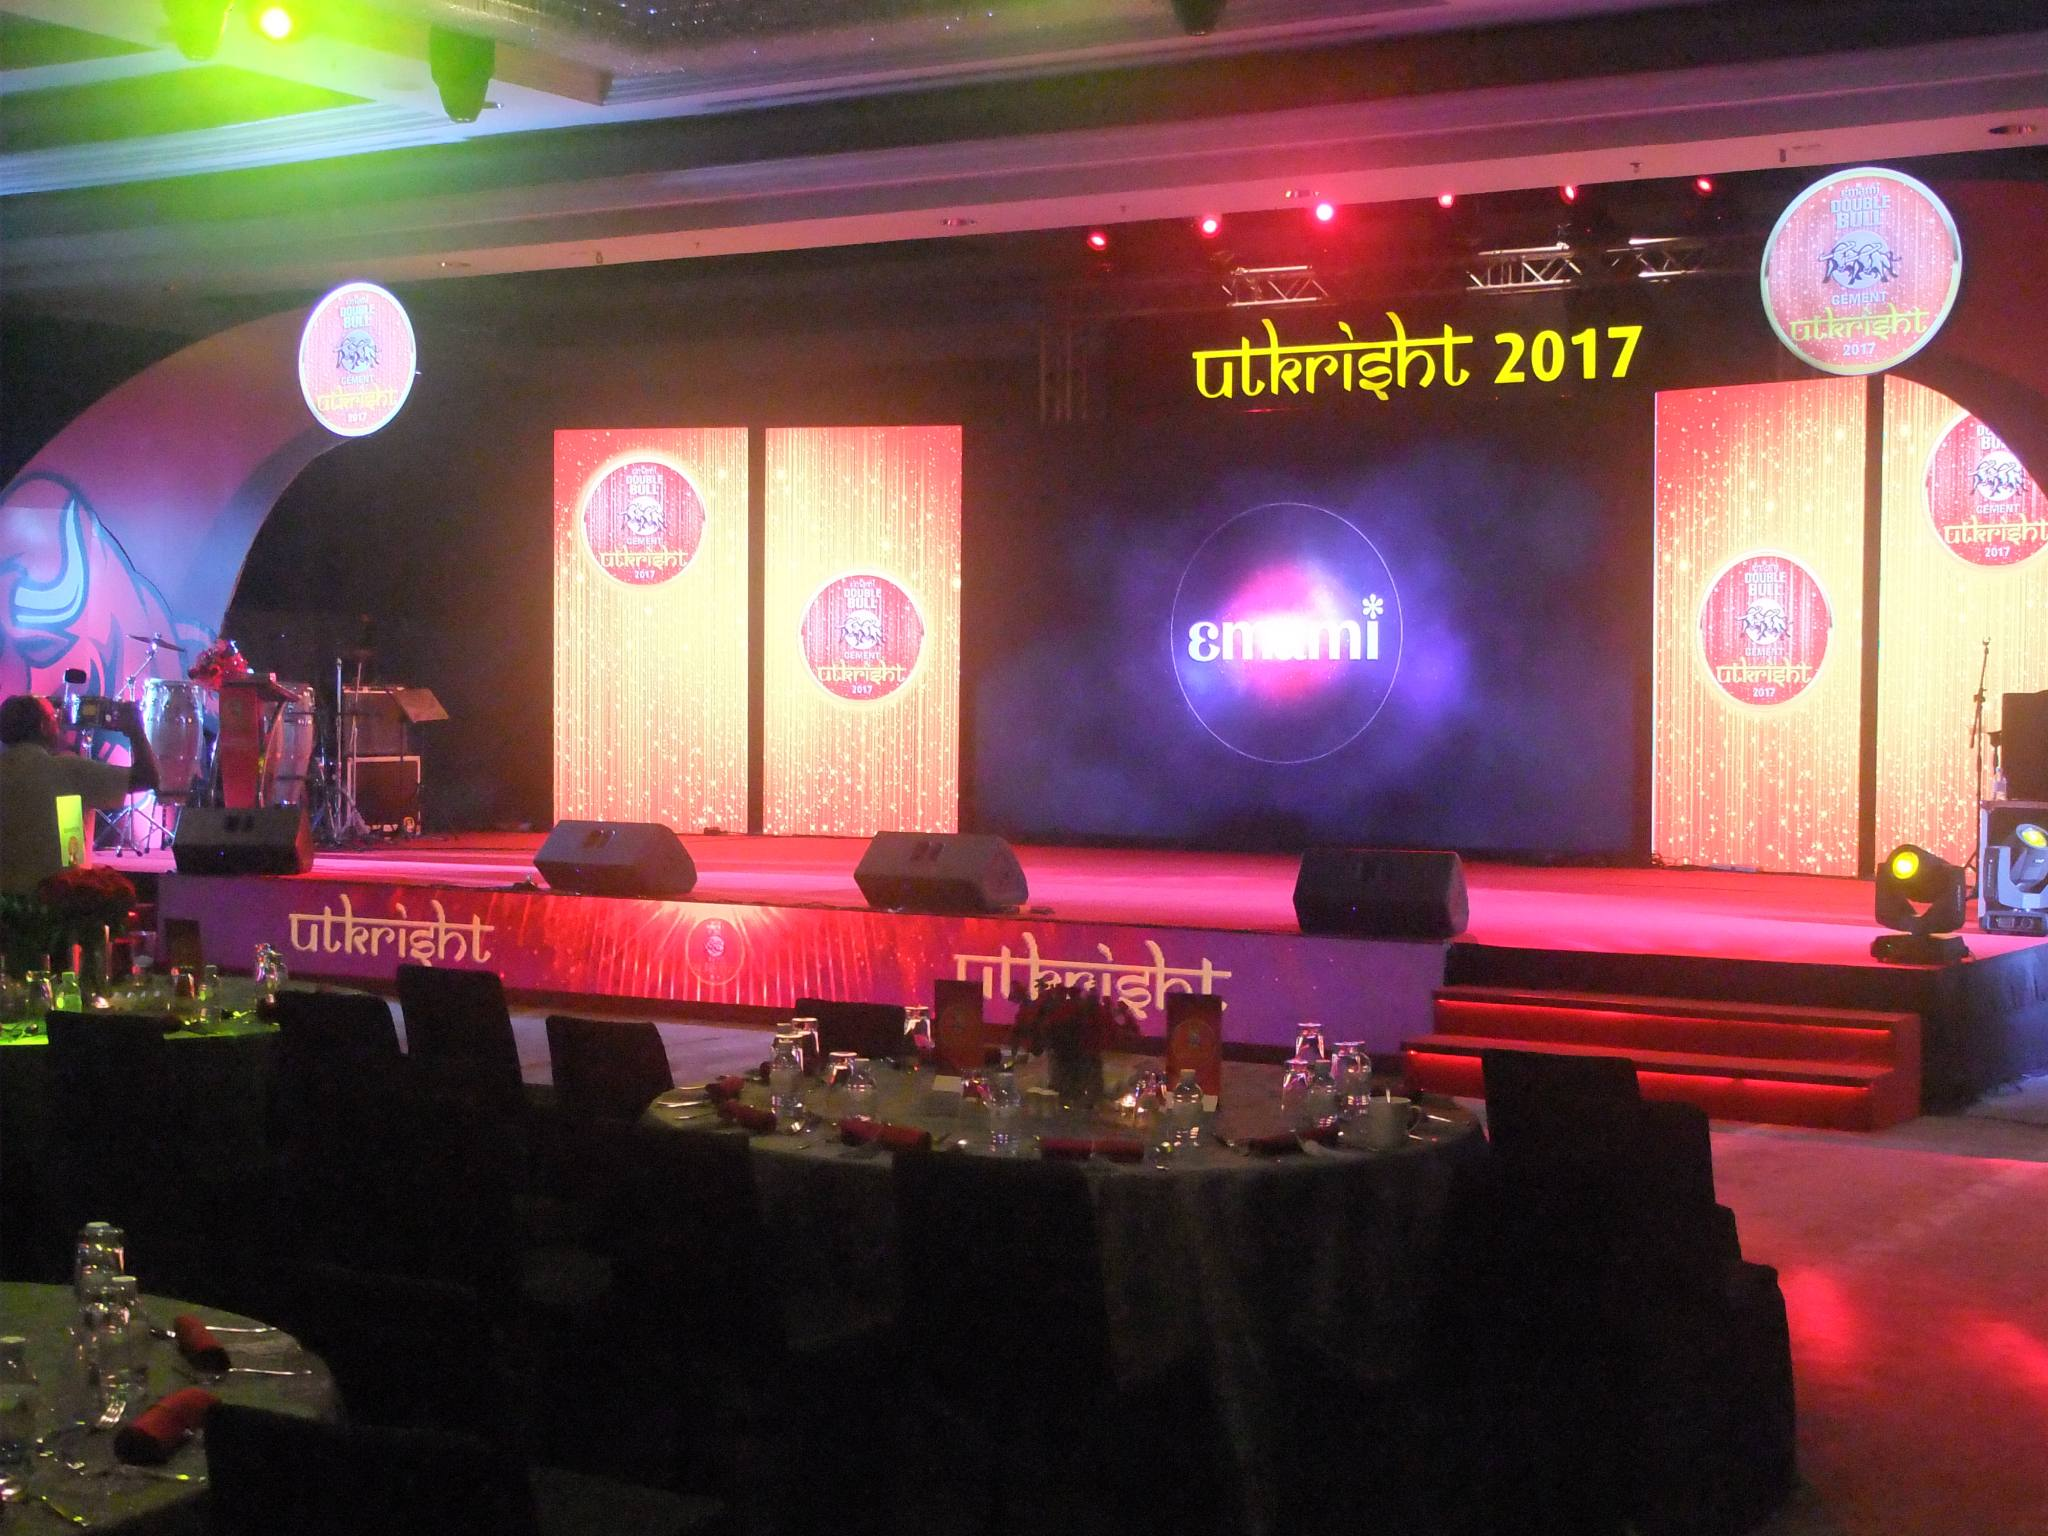 Corporate Event Companies in Bangkok, Thailand